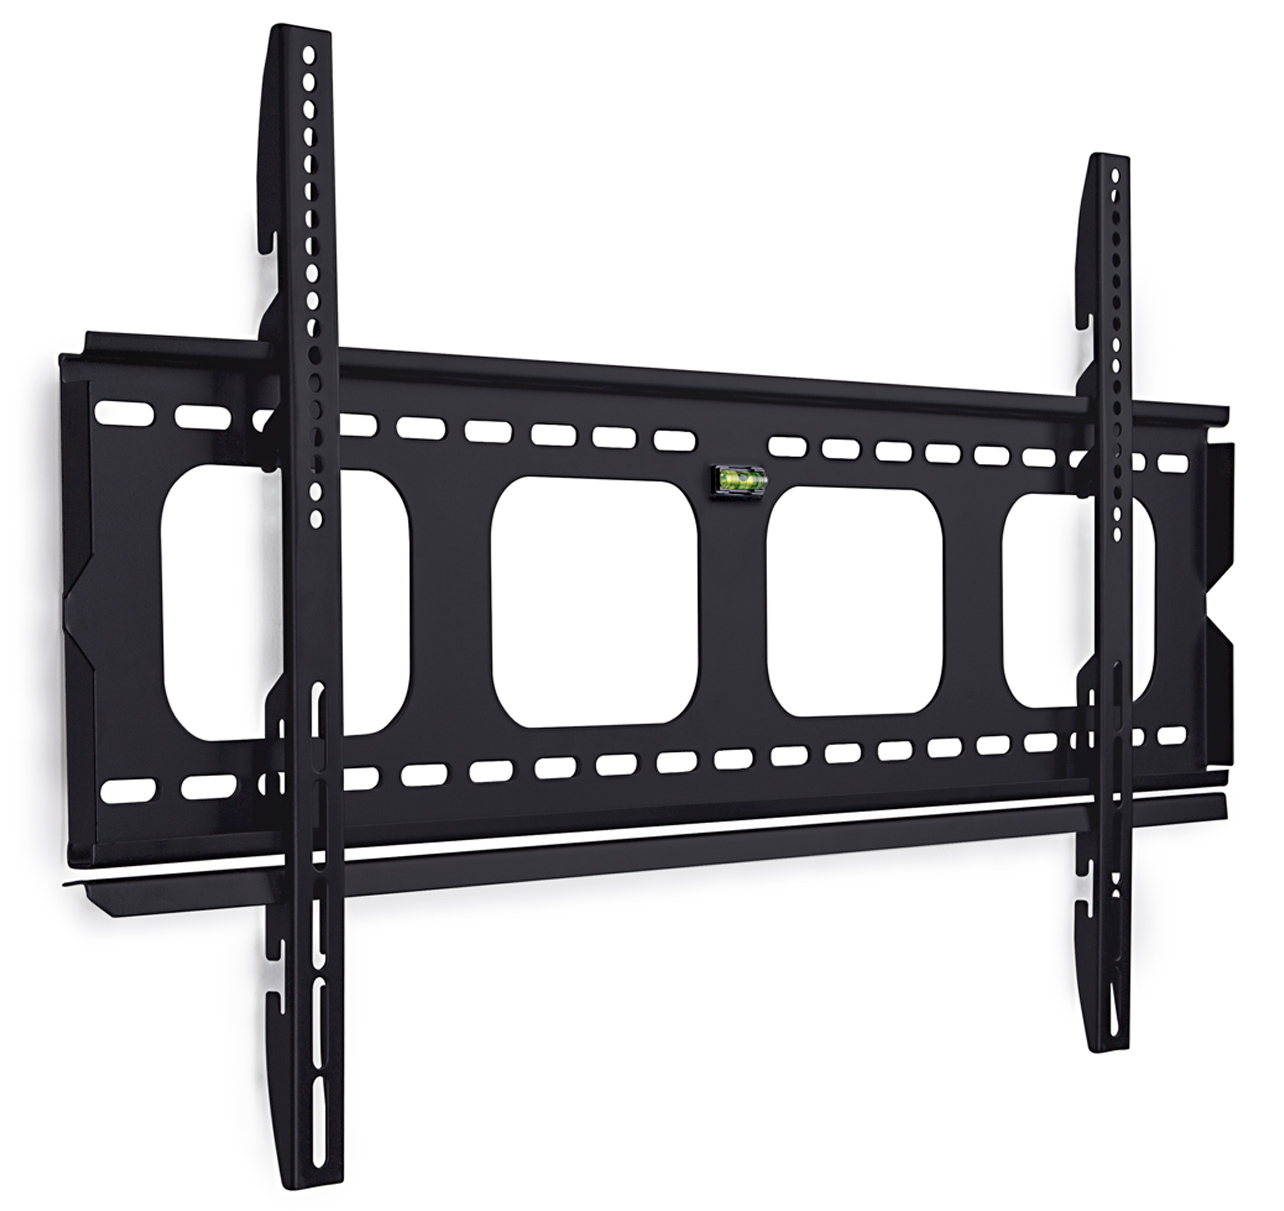 The best fixed TV mounting bracket is by MountIt!